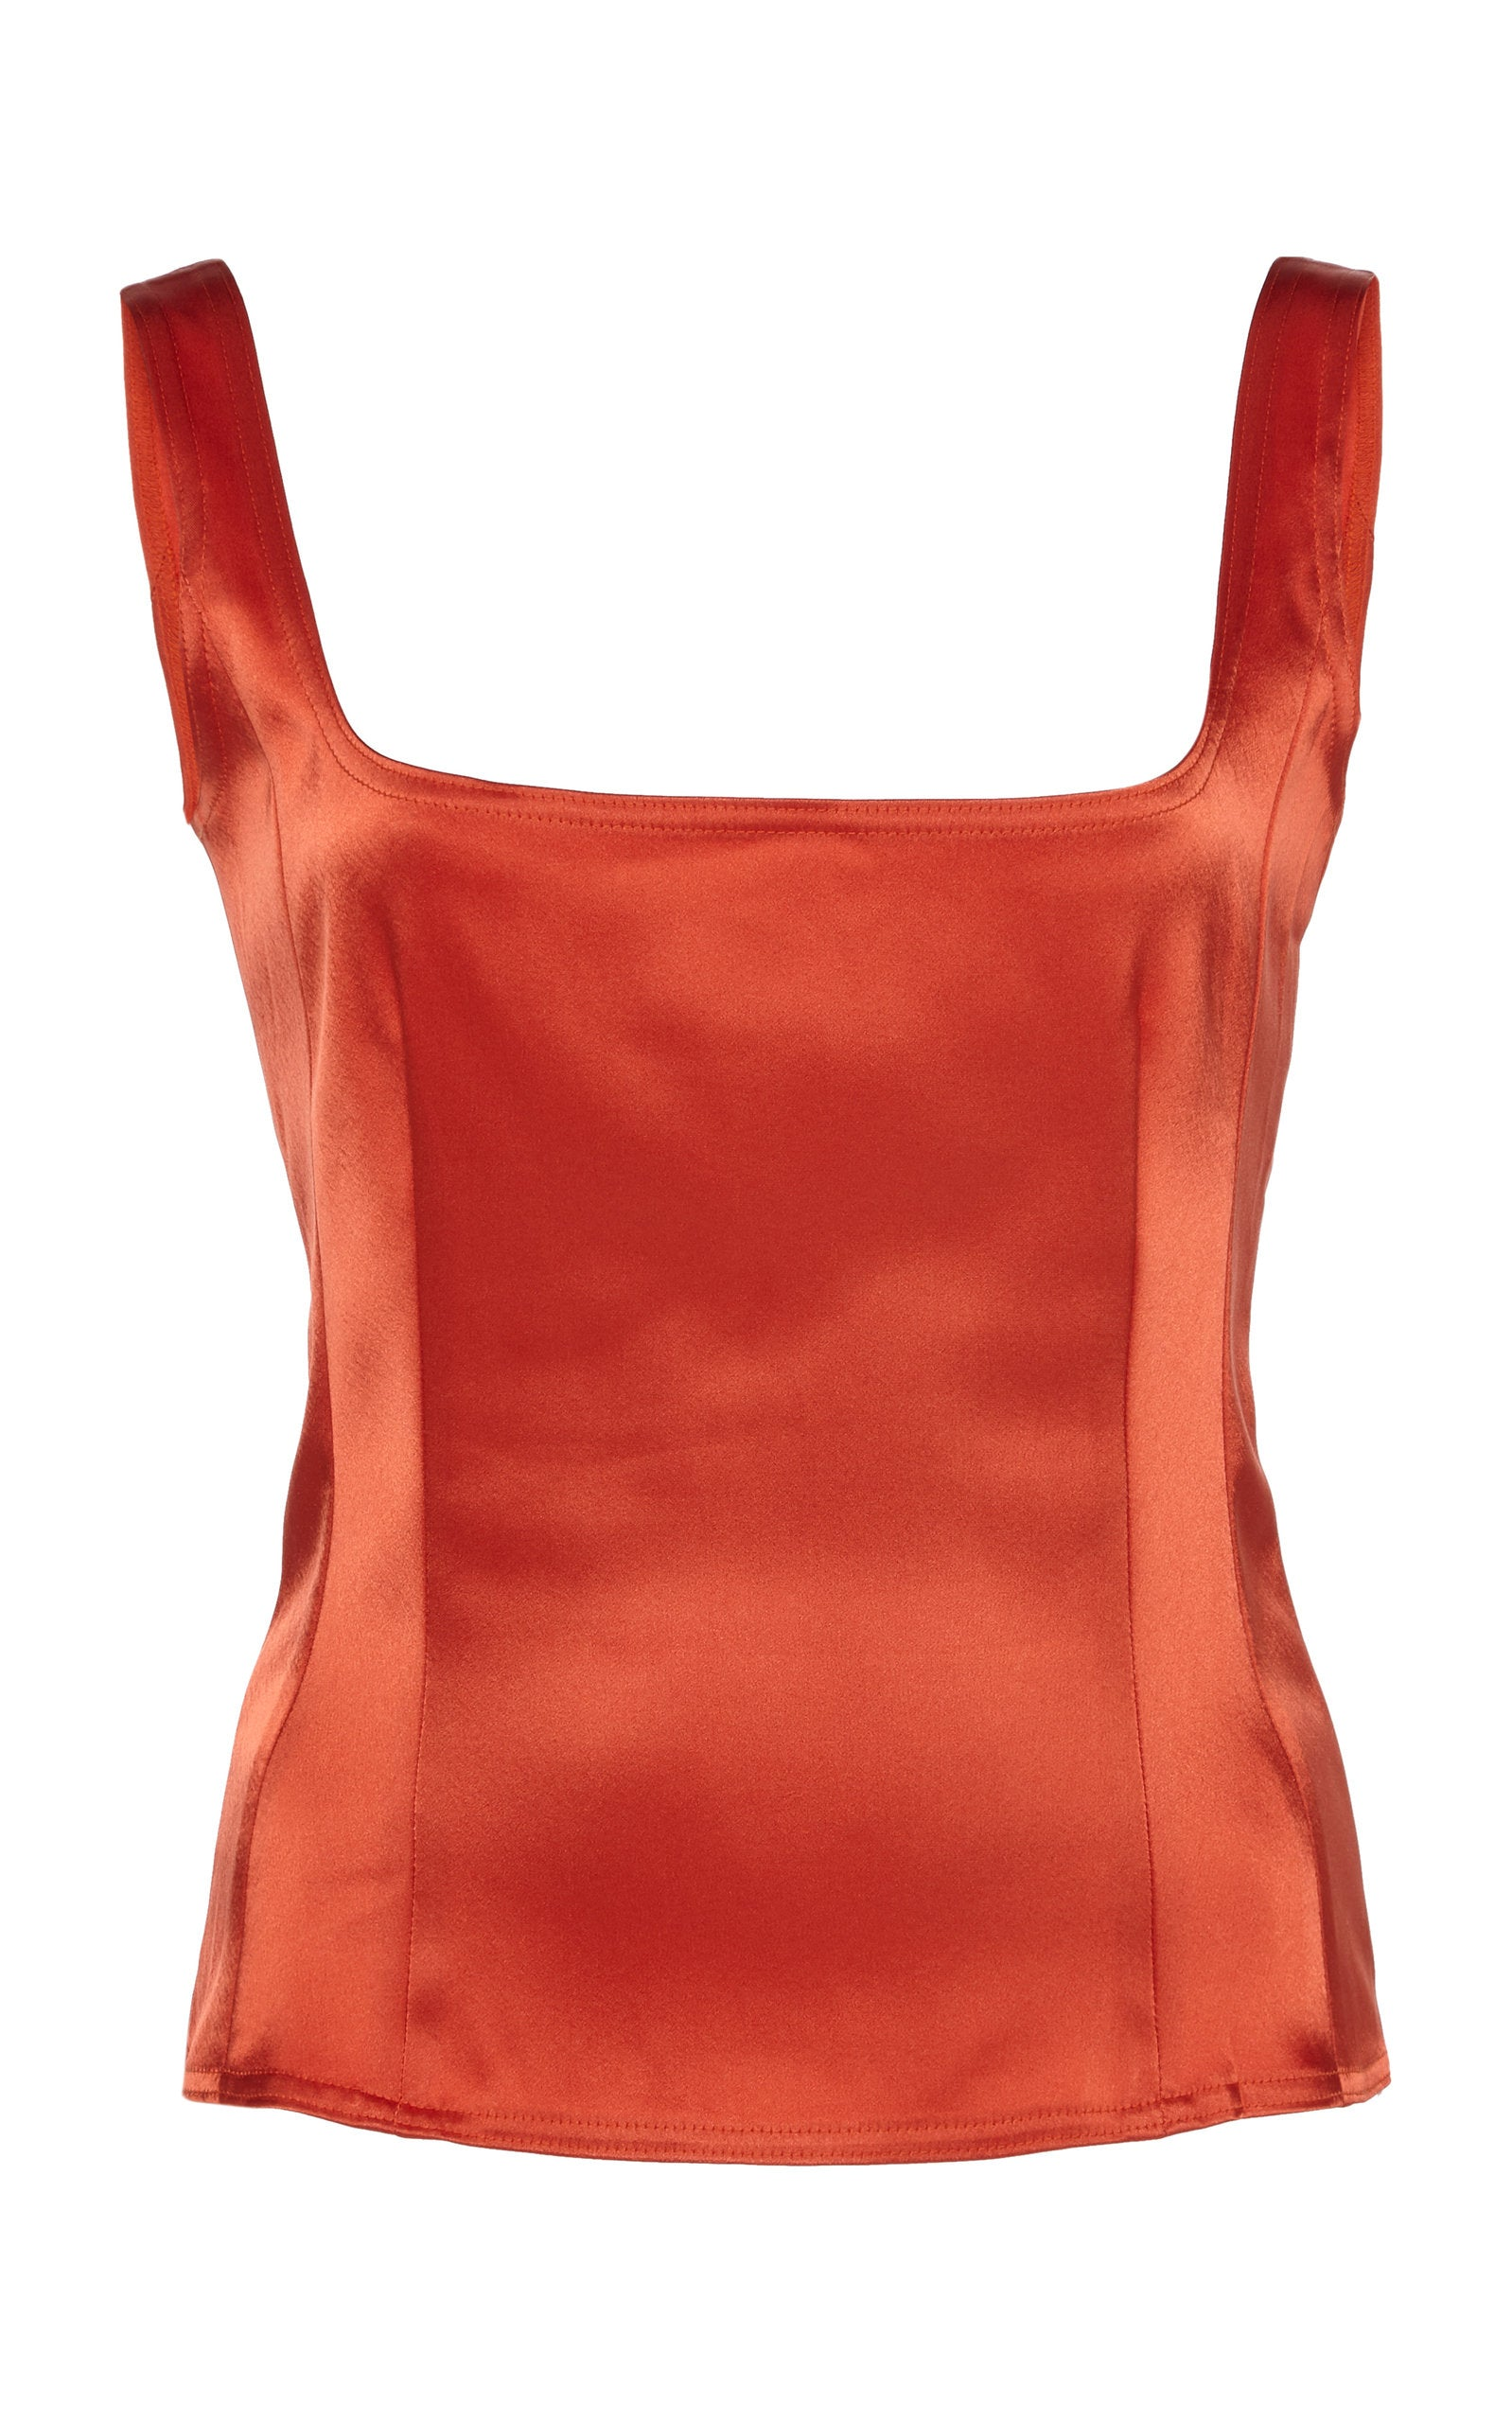 Simple Singlet | Burnt Sienna